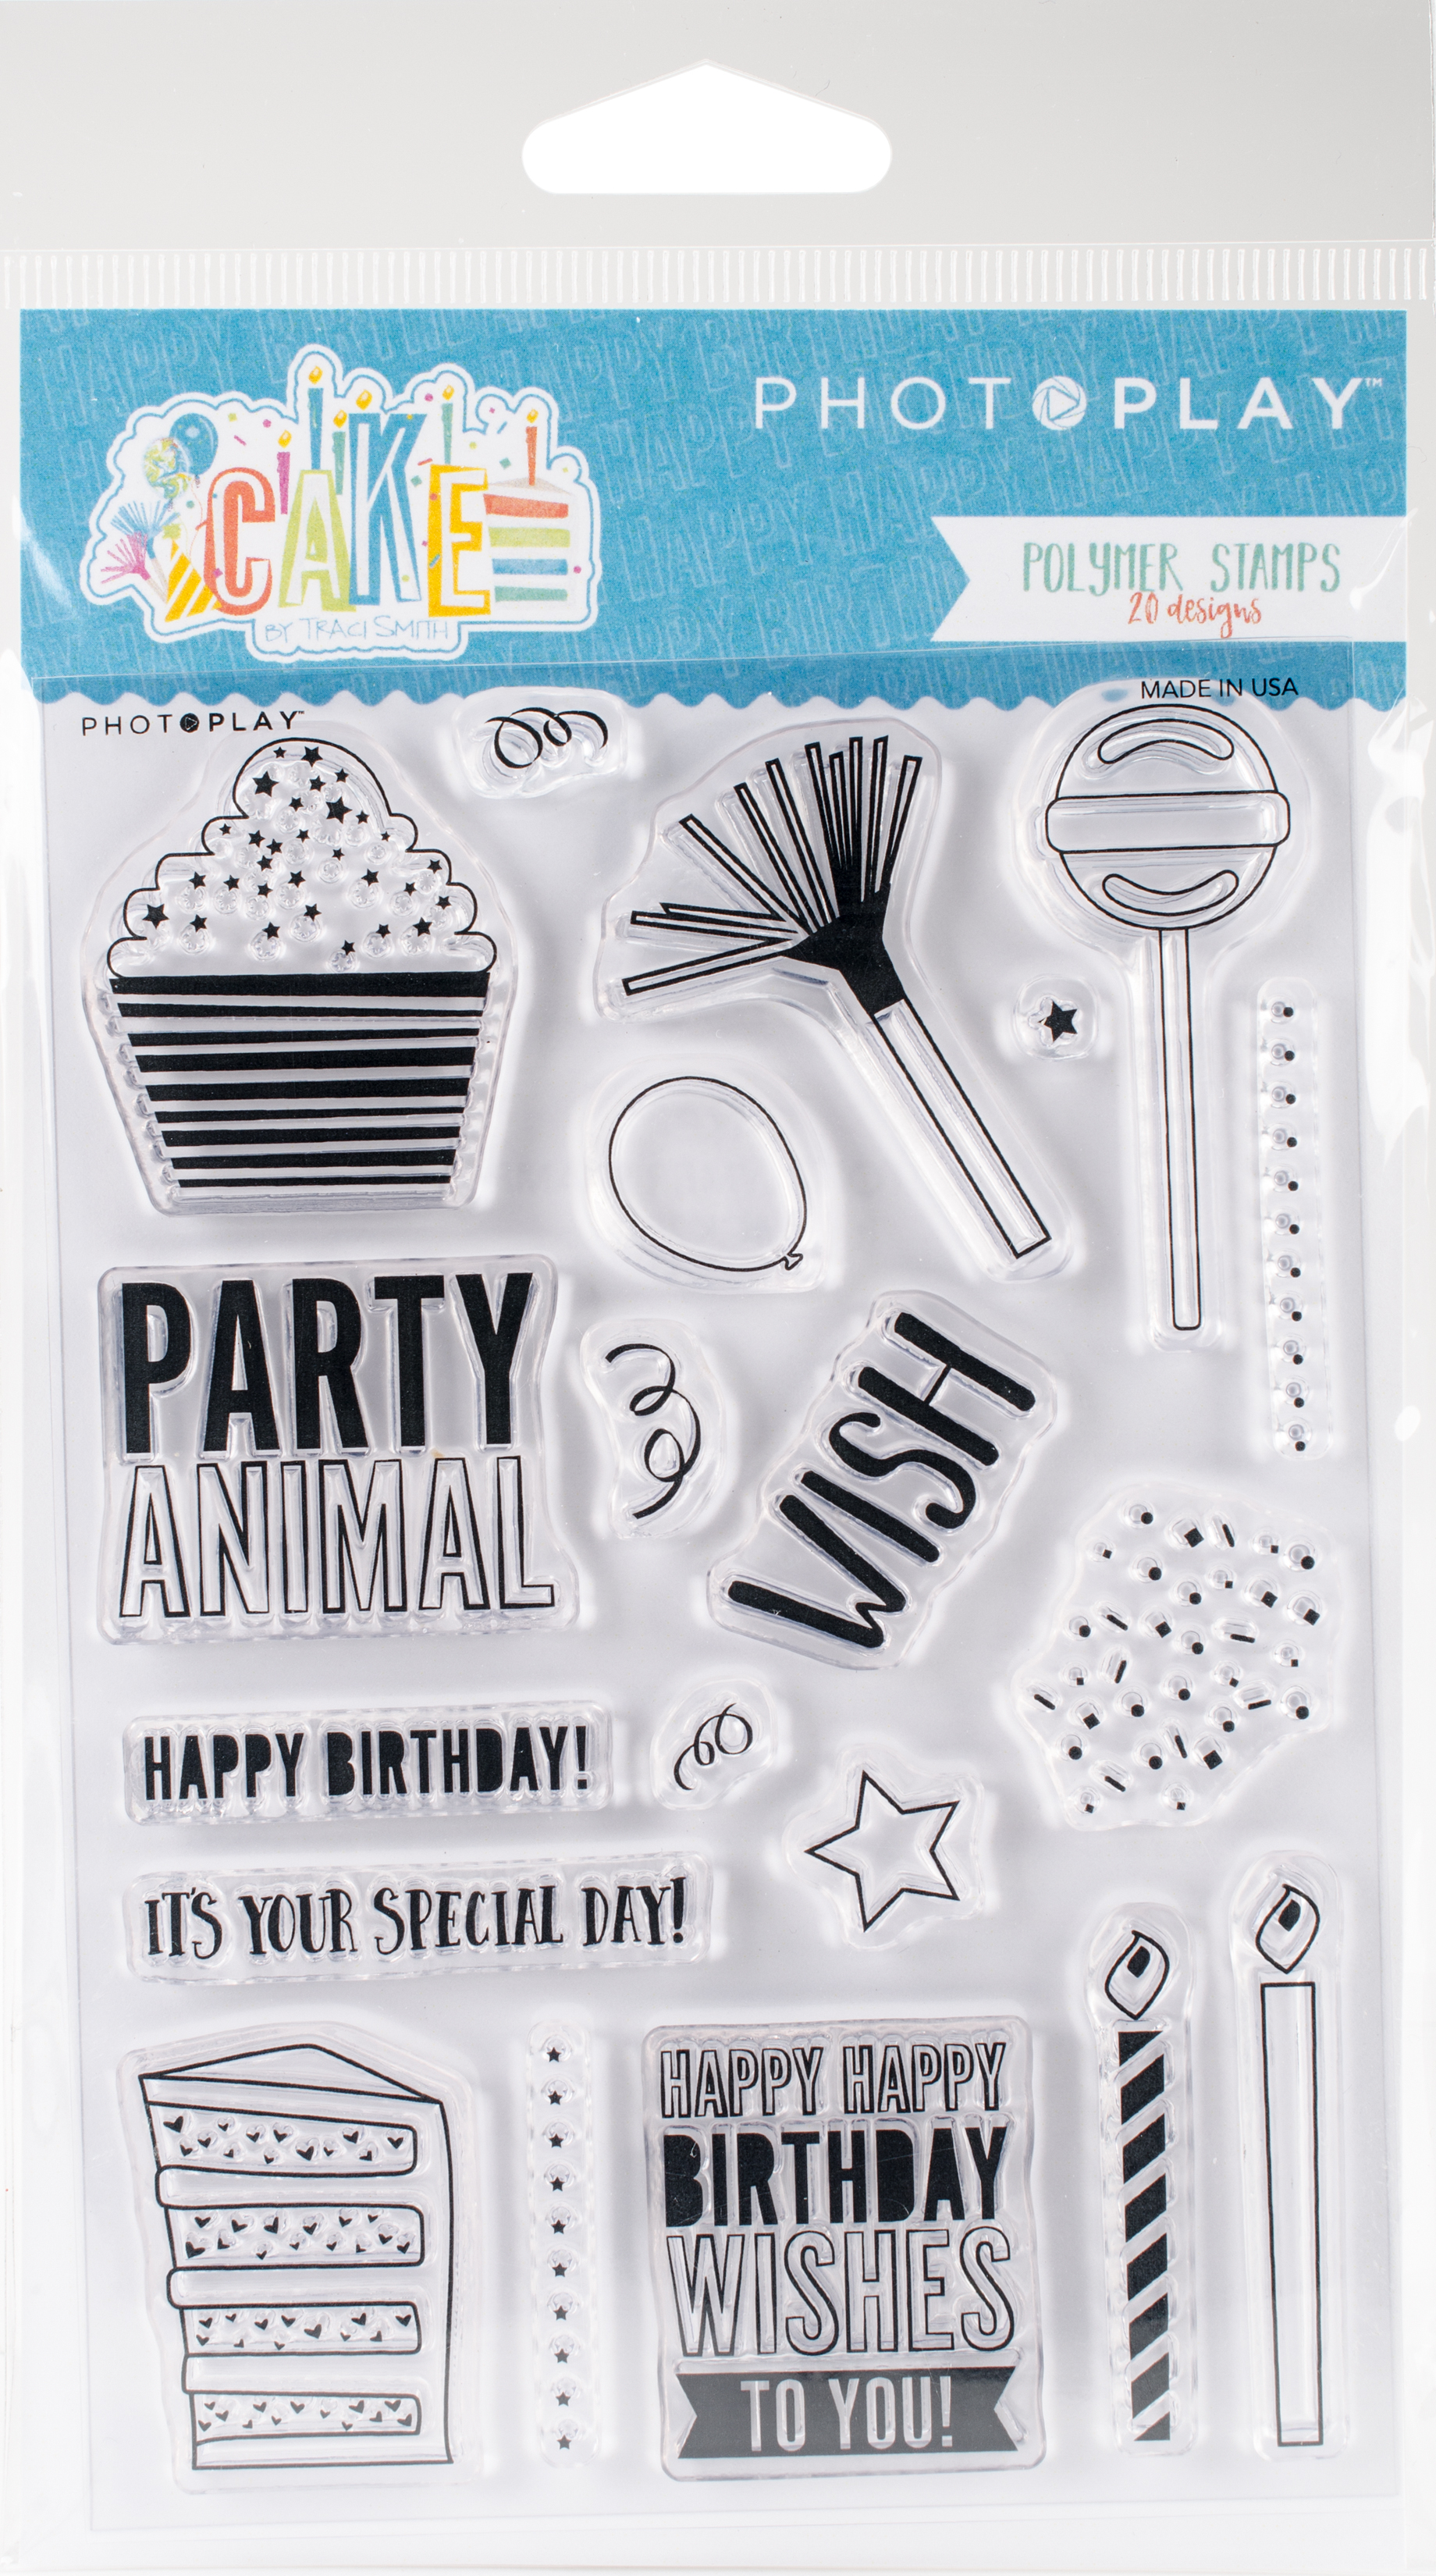 Cake Polymer Stamps-Elements